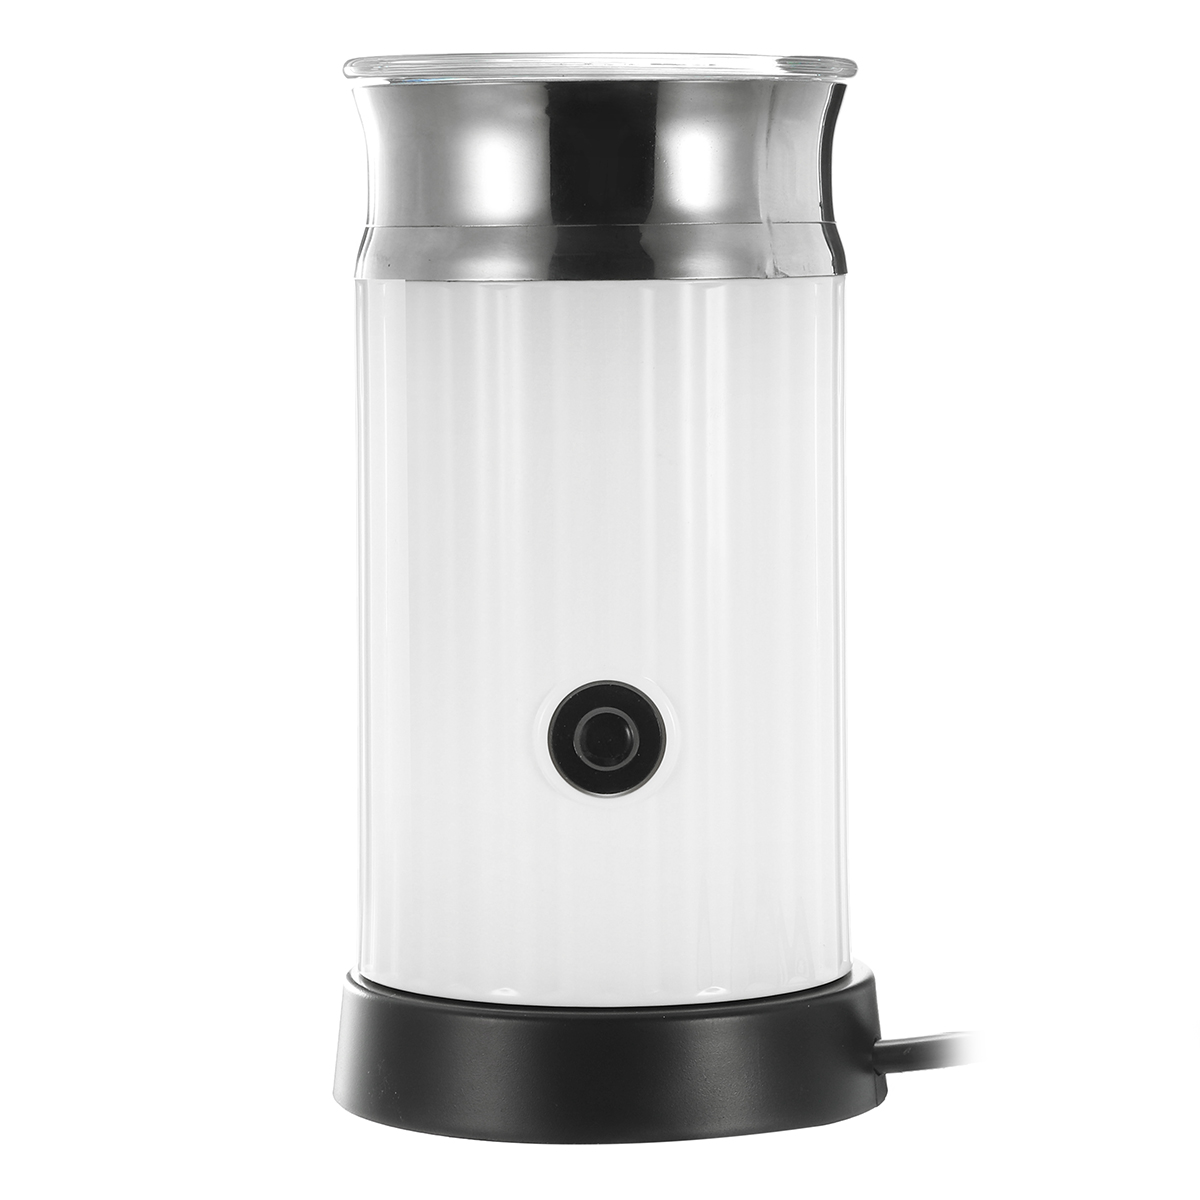 500W Electric Warm Milk Frother Automatic Home Coffee Foaming Maker Machine Milk Blender